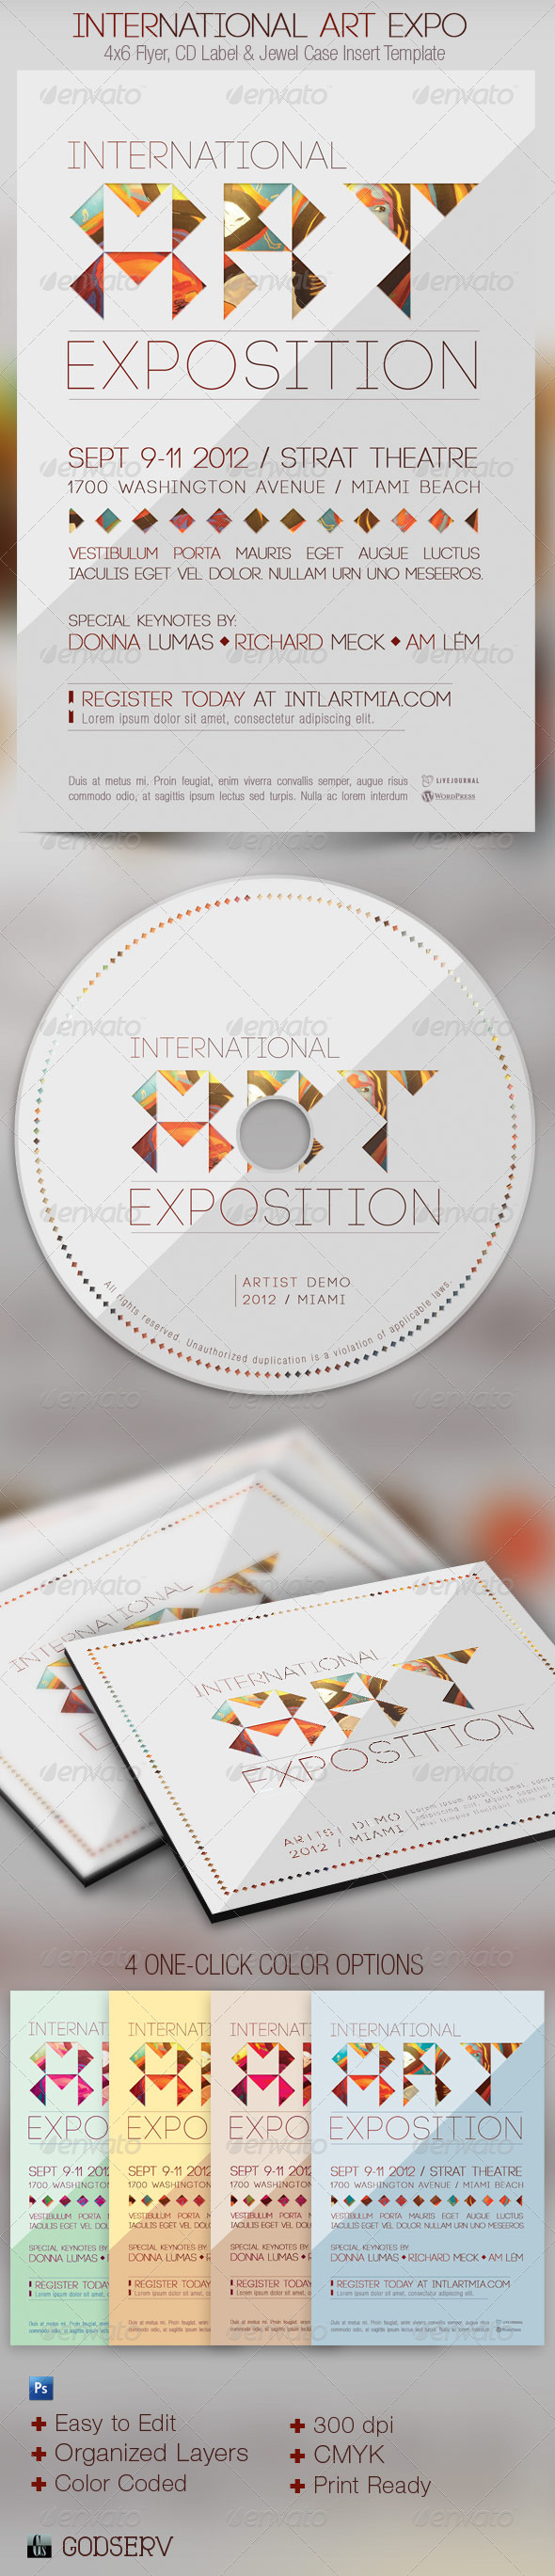 International Art Expo Flyer CD Template - Events Flyers